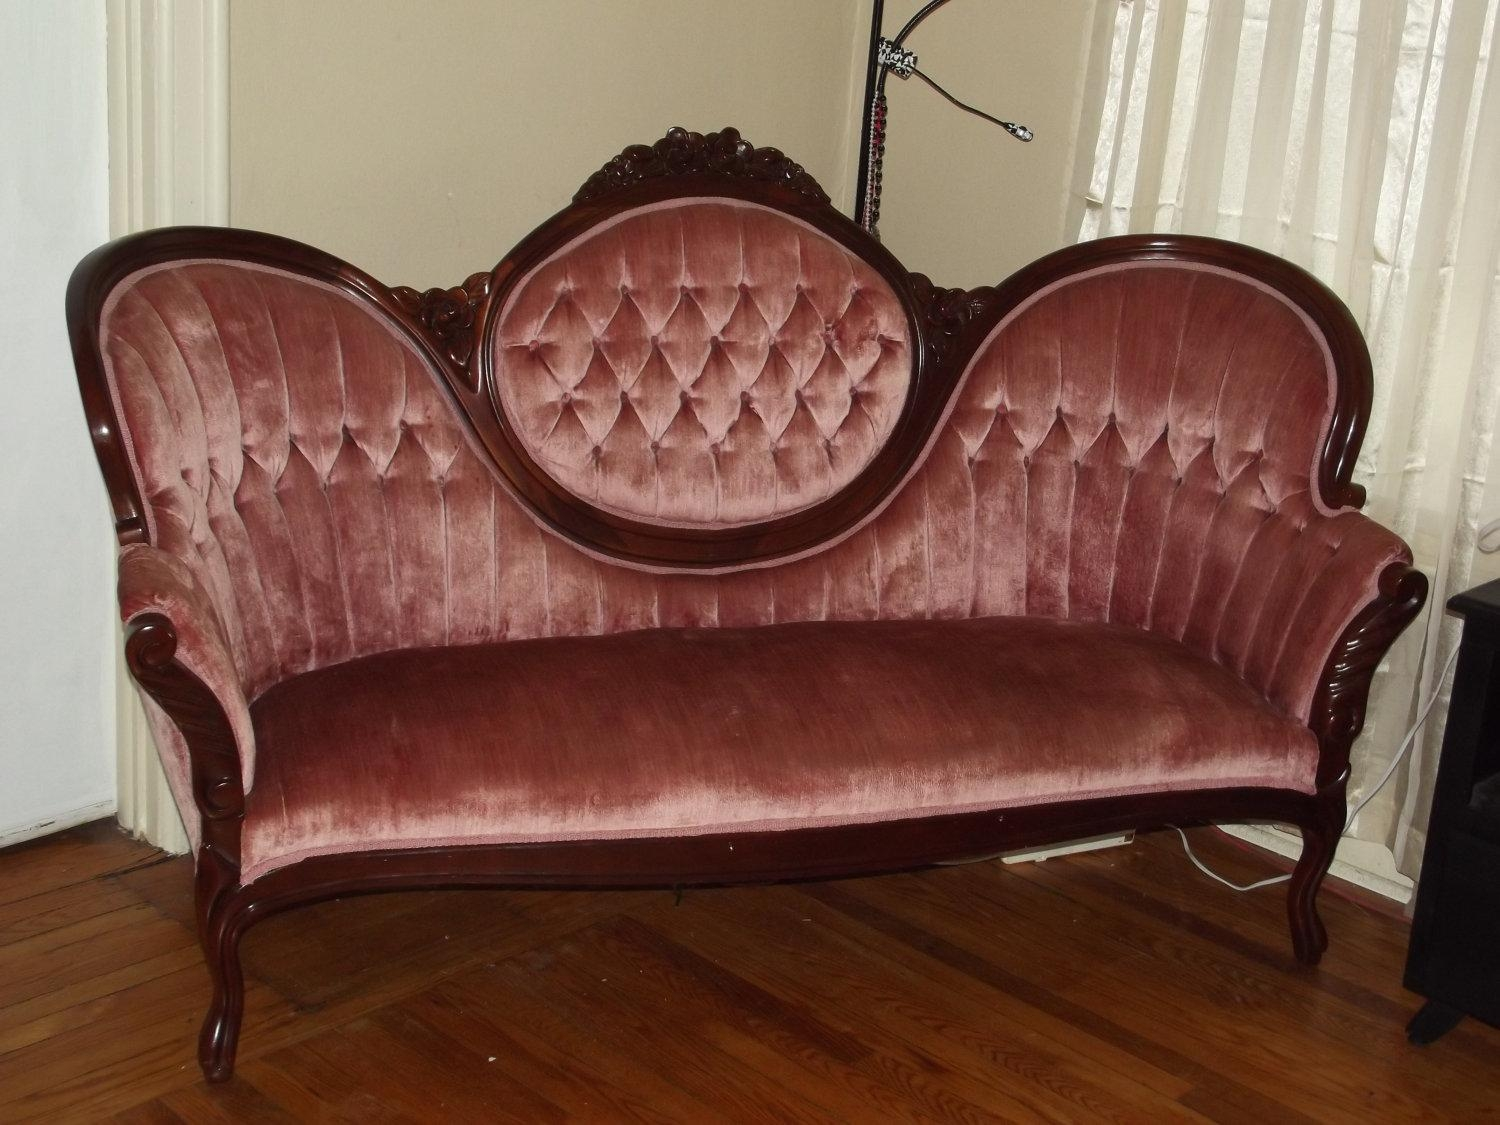 Vintage sofa styles oned chesterfield sofa antique brown thesofa Retro loveseats